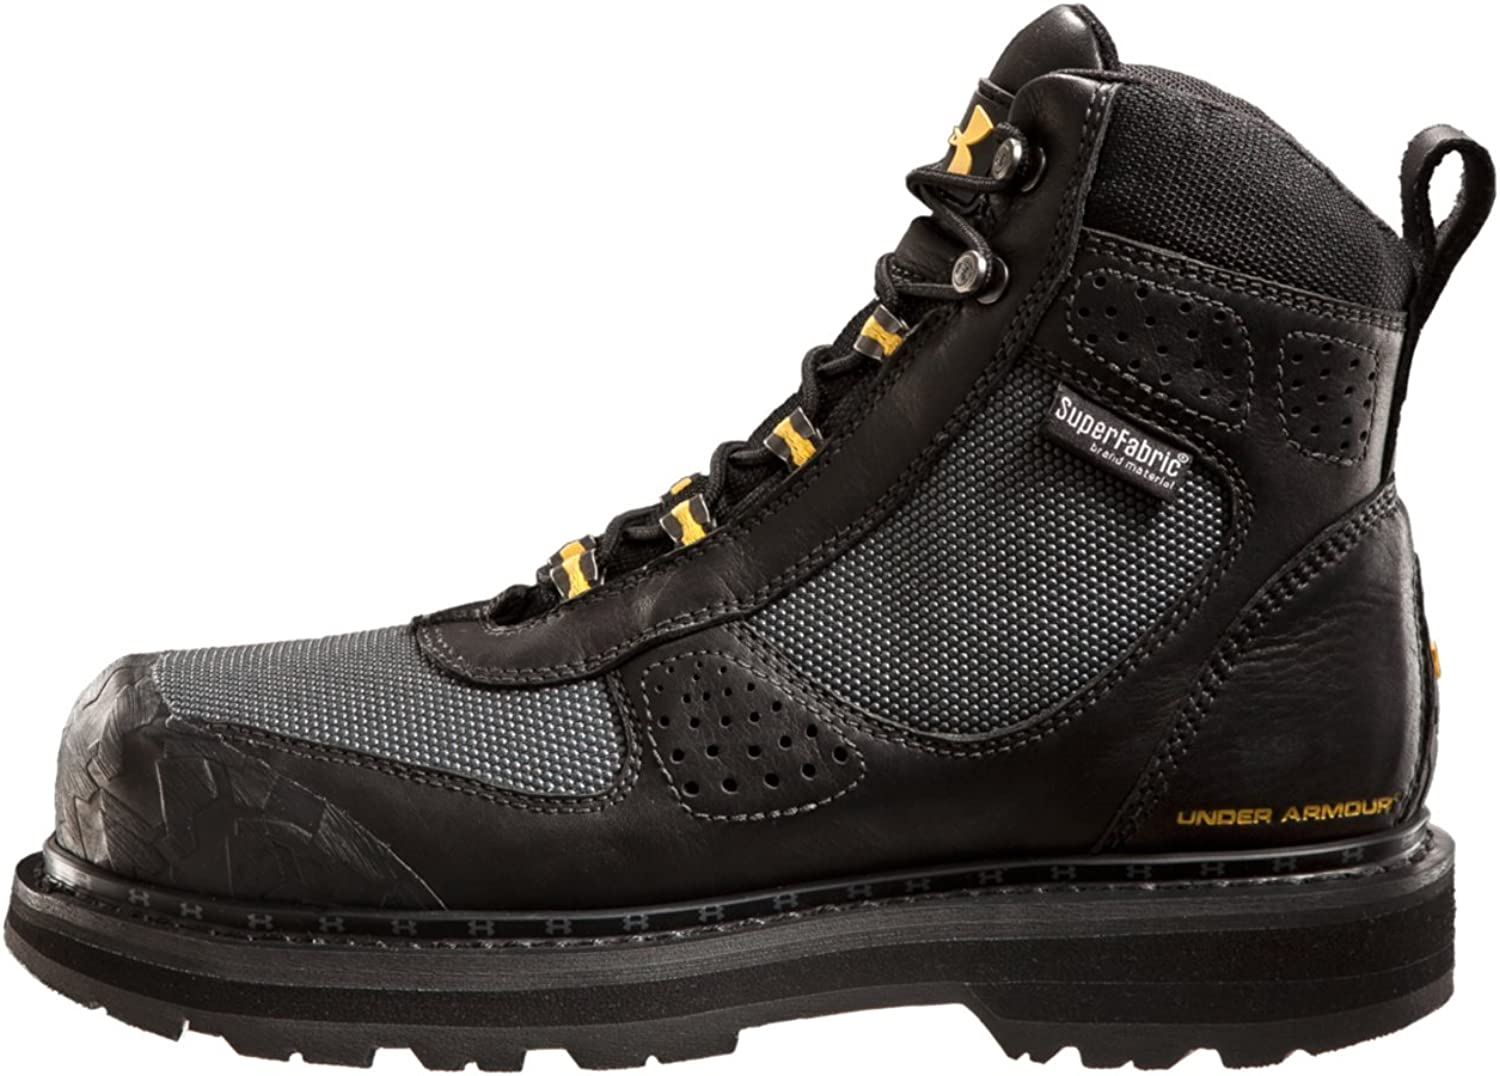 inch Composite Toe Boots